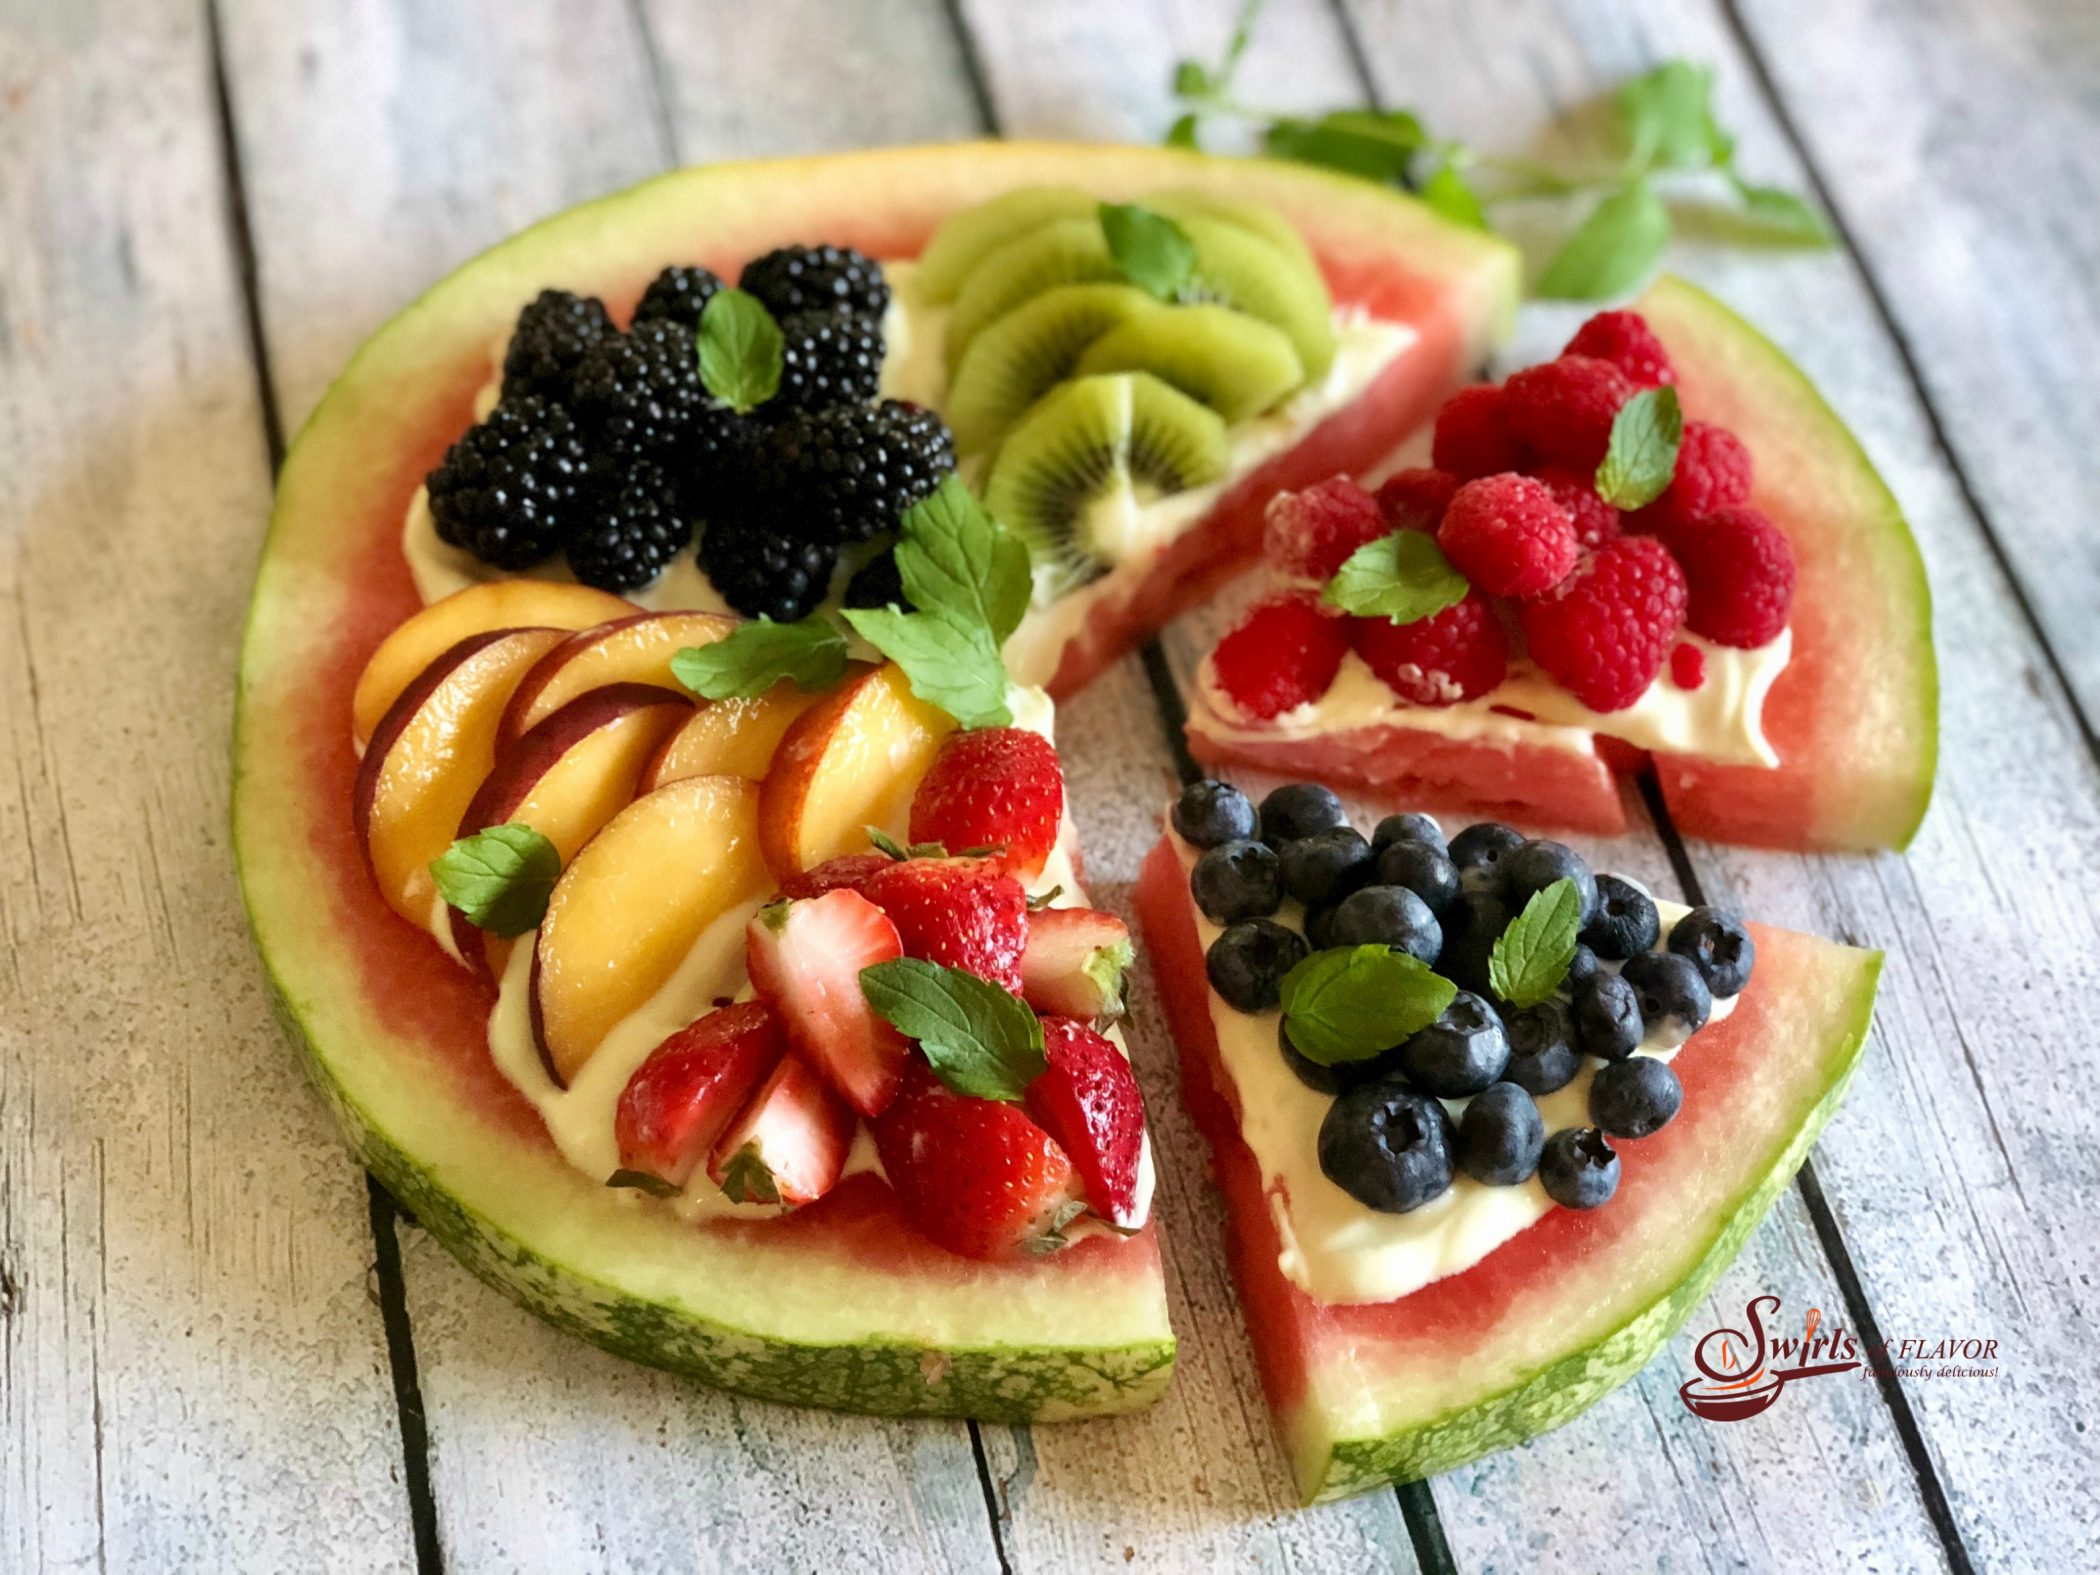 Watermelon pie topped with fruit and two slices cut